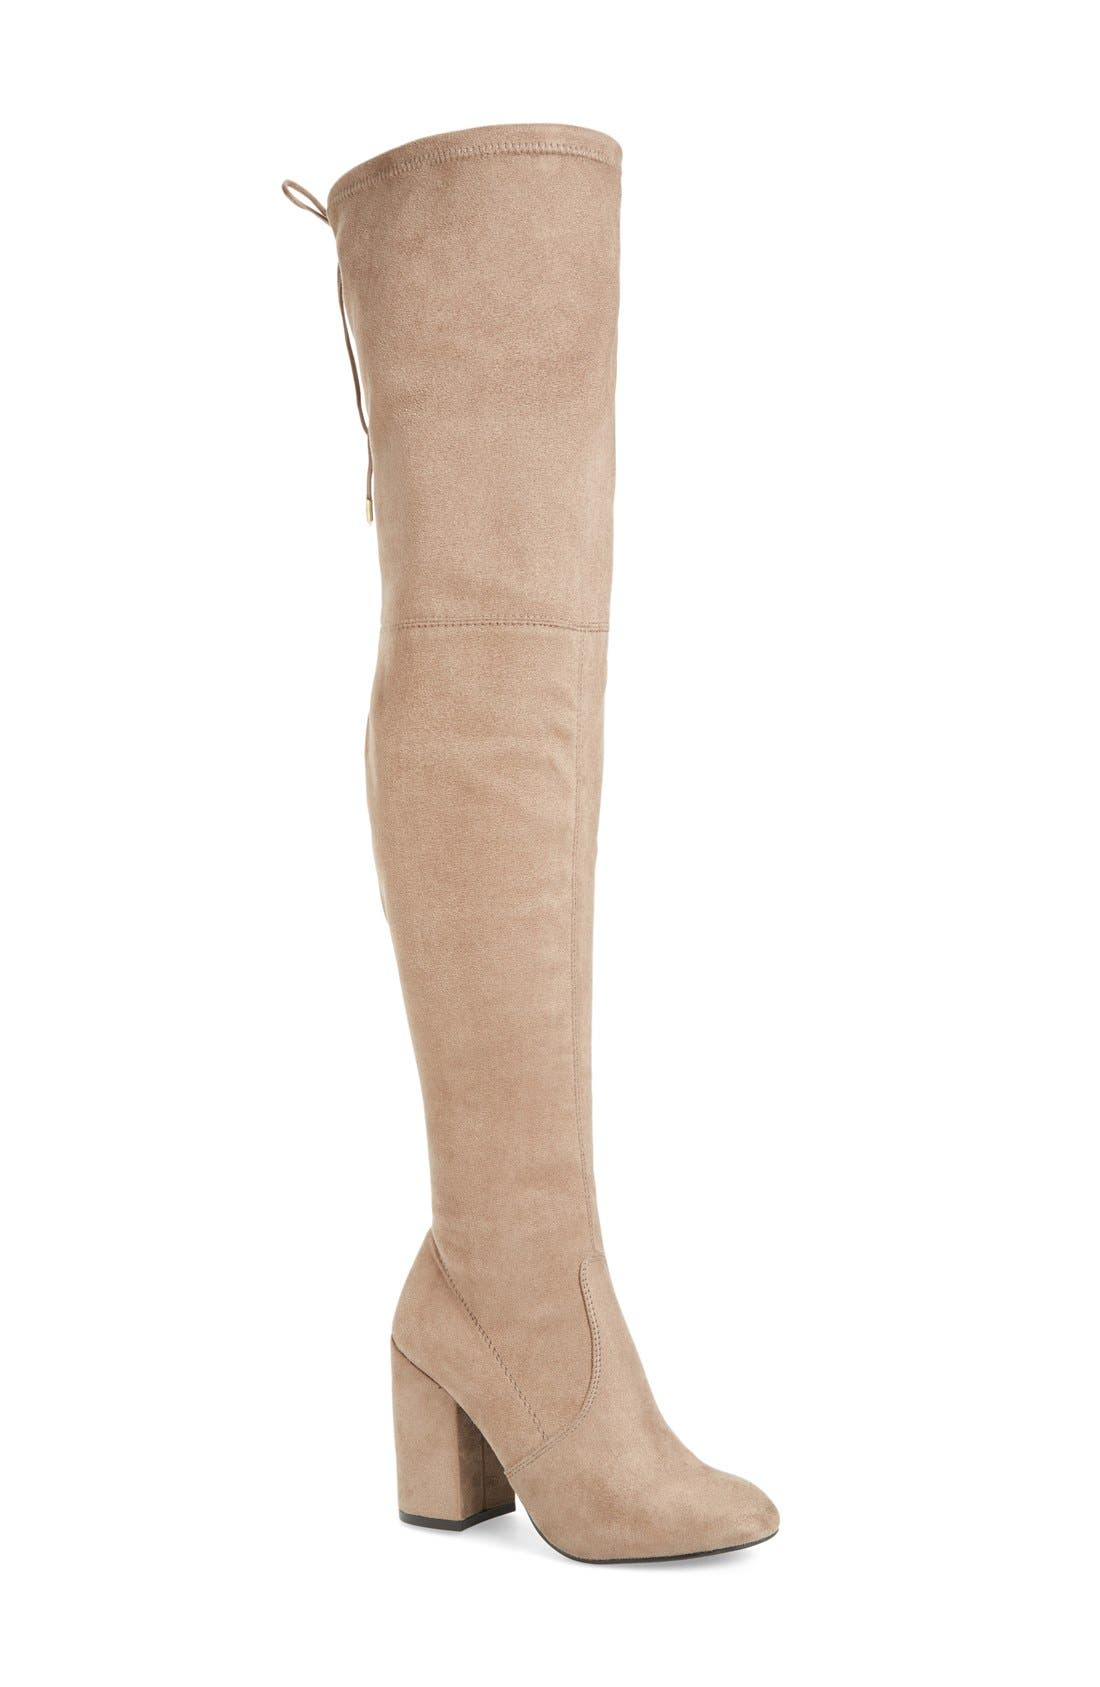 Norri Over the Knee Boot,                         Main,                         color, Taupe